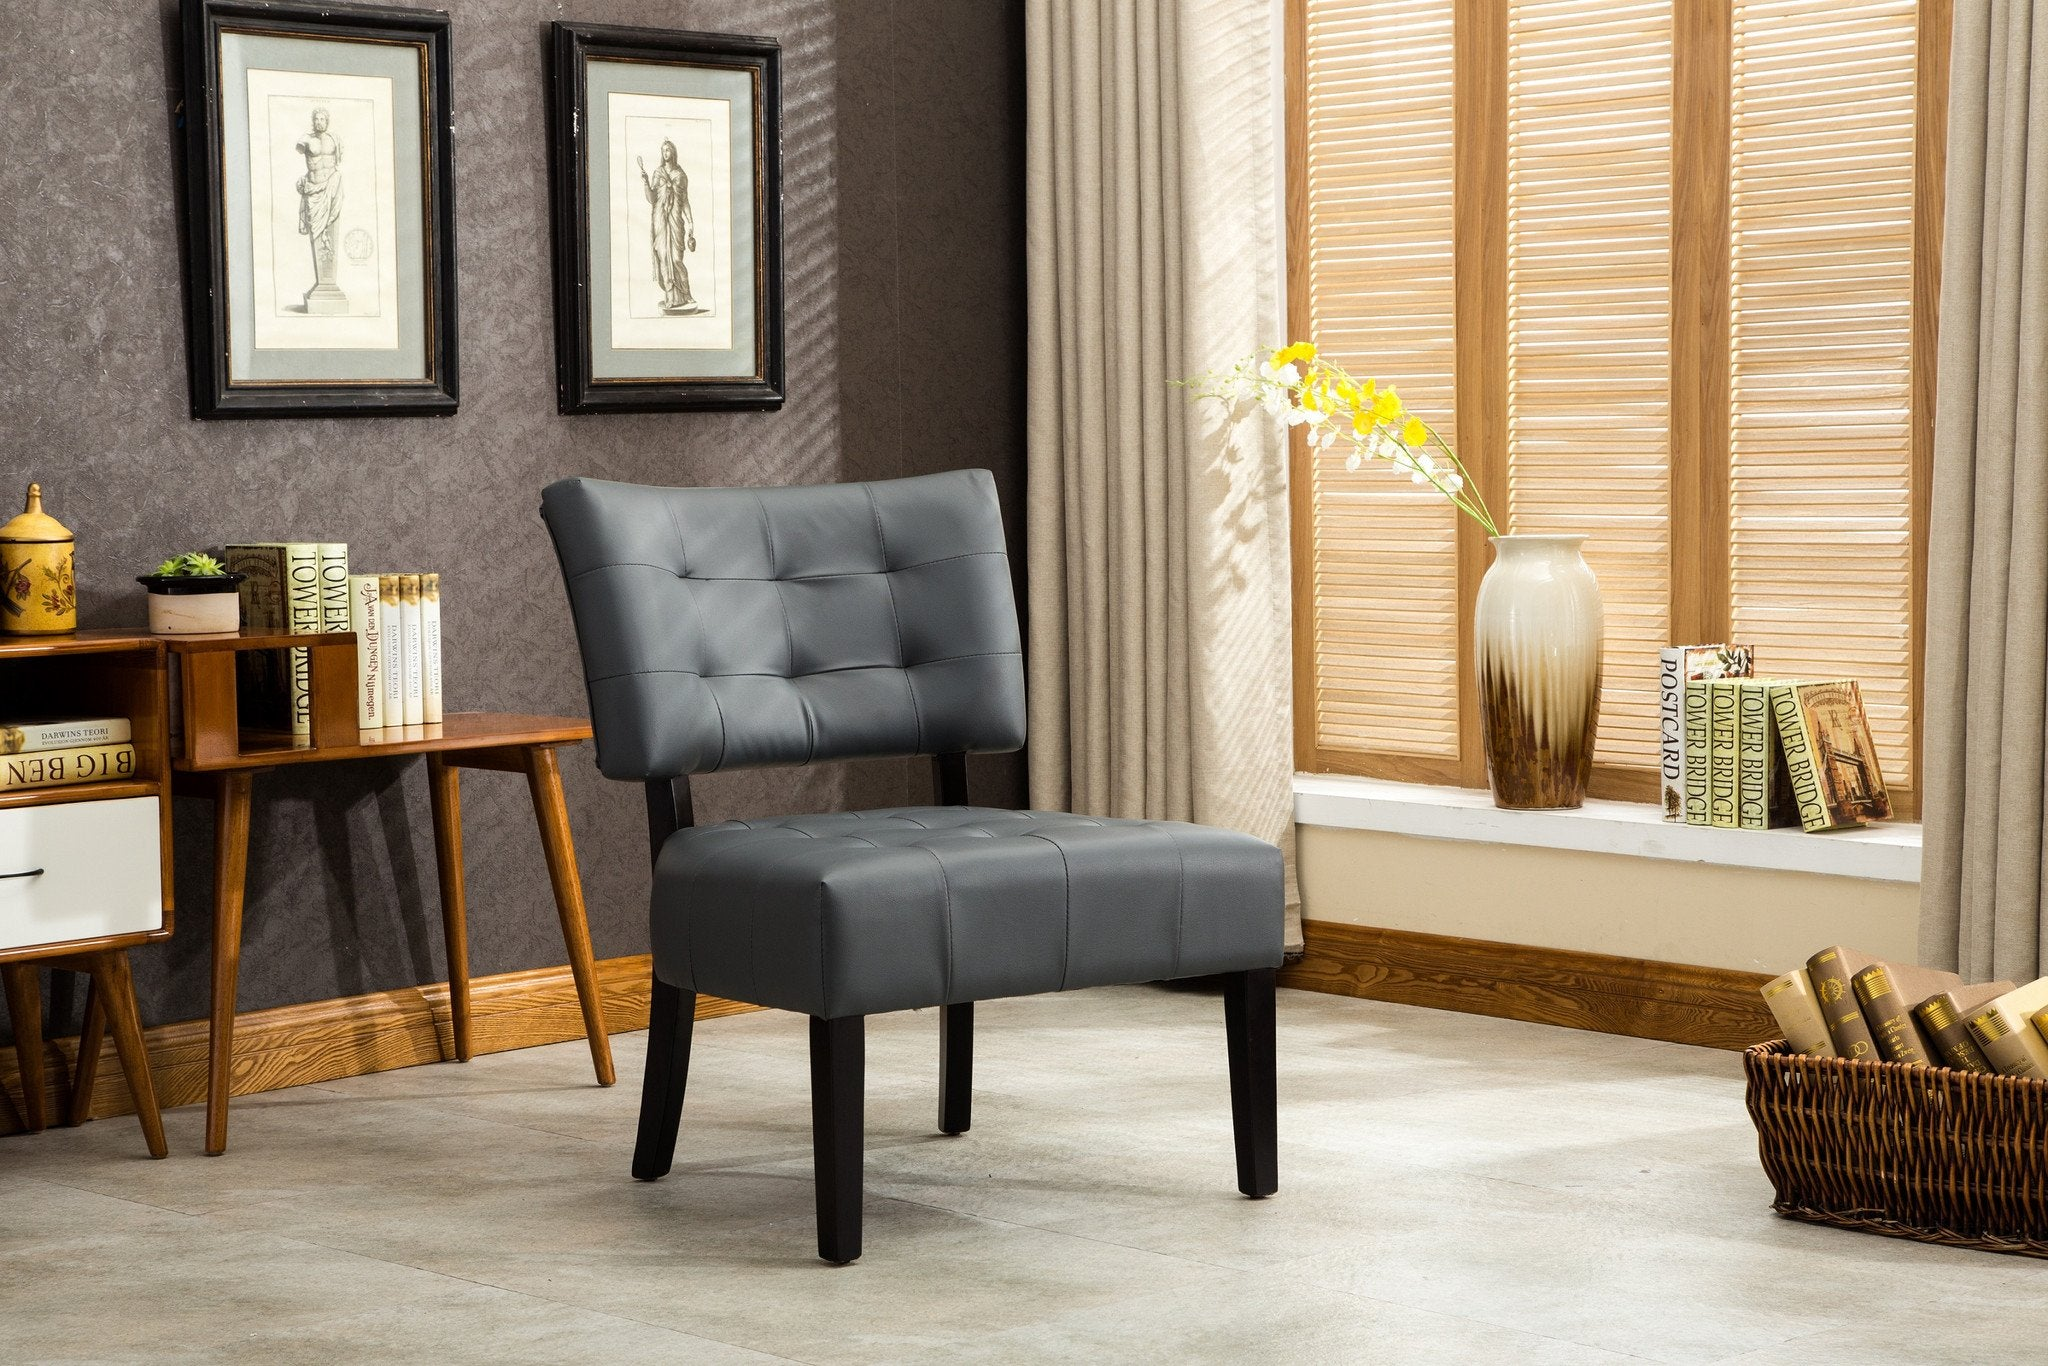 Bally Blended Grey Leather Tufted Accent Chair with Oversized Seating